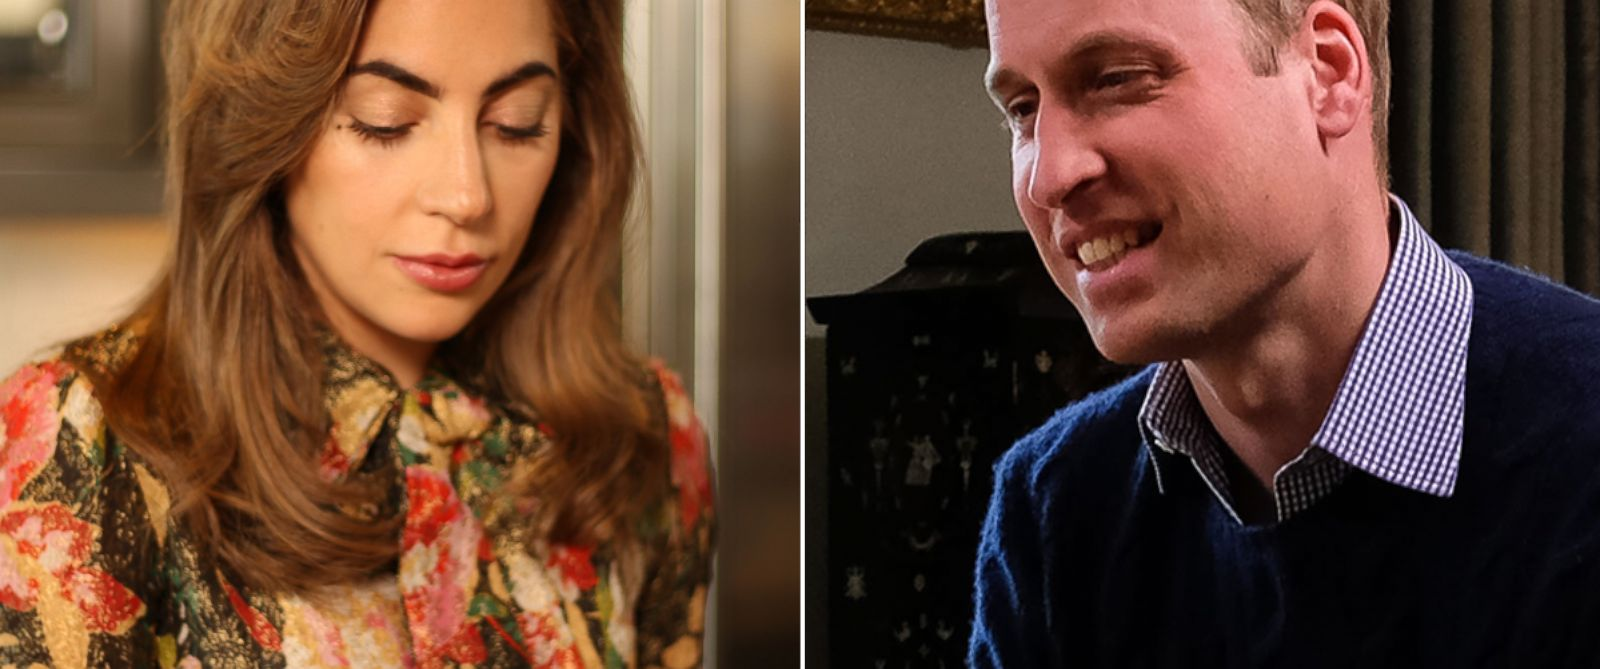 PHOTO: Lady Gaga and Prince William speak on FaceTime to discuss breaking stigmas that surround mental health issues.